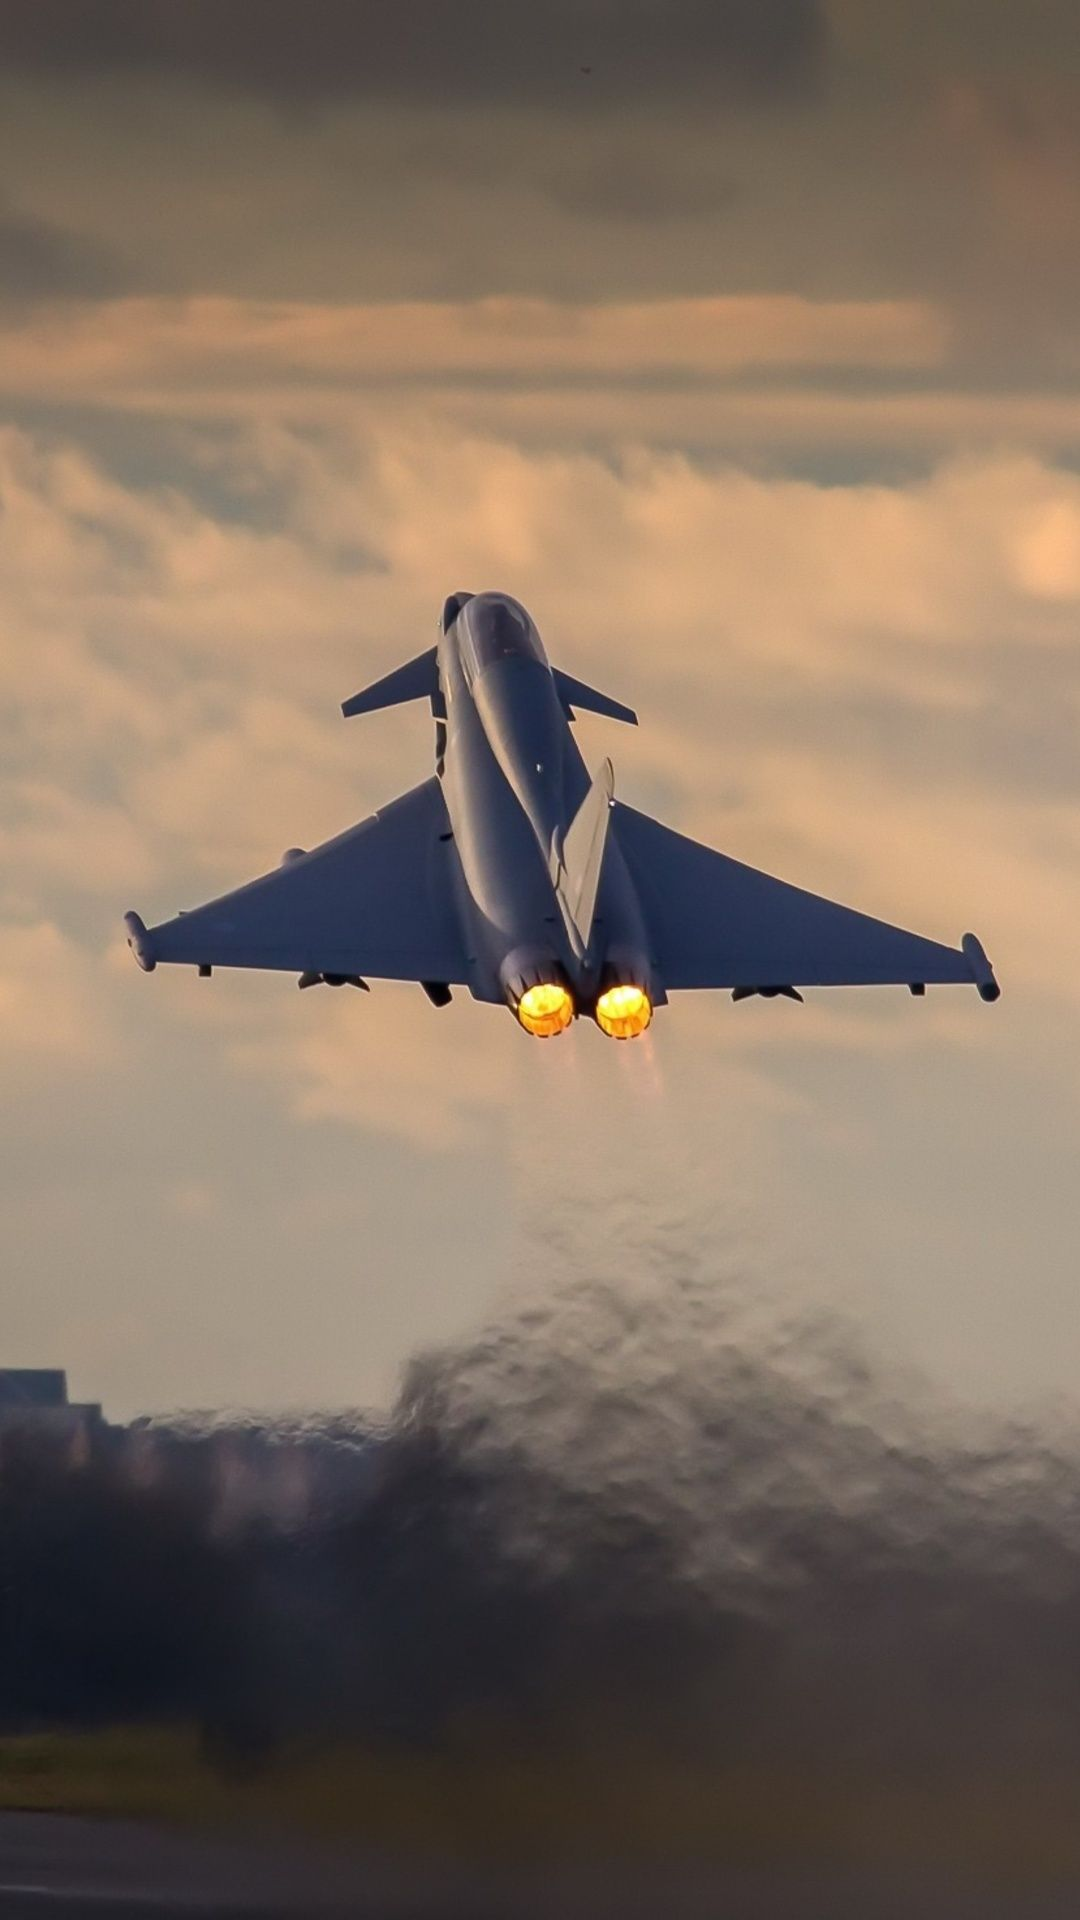 Eurofighter Typhoon Hd Military Aircraft Fighter Jets Aircraft